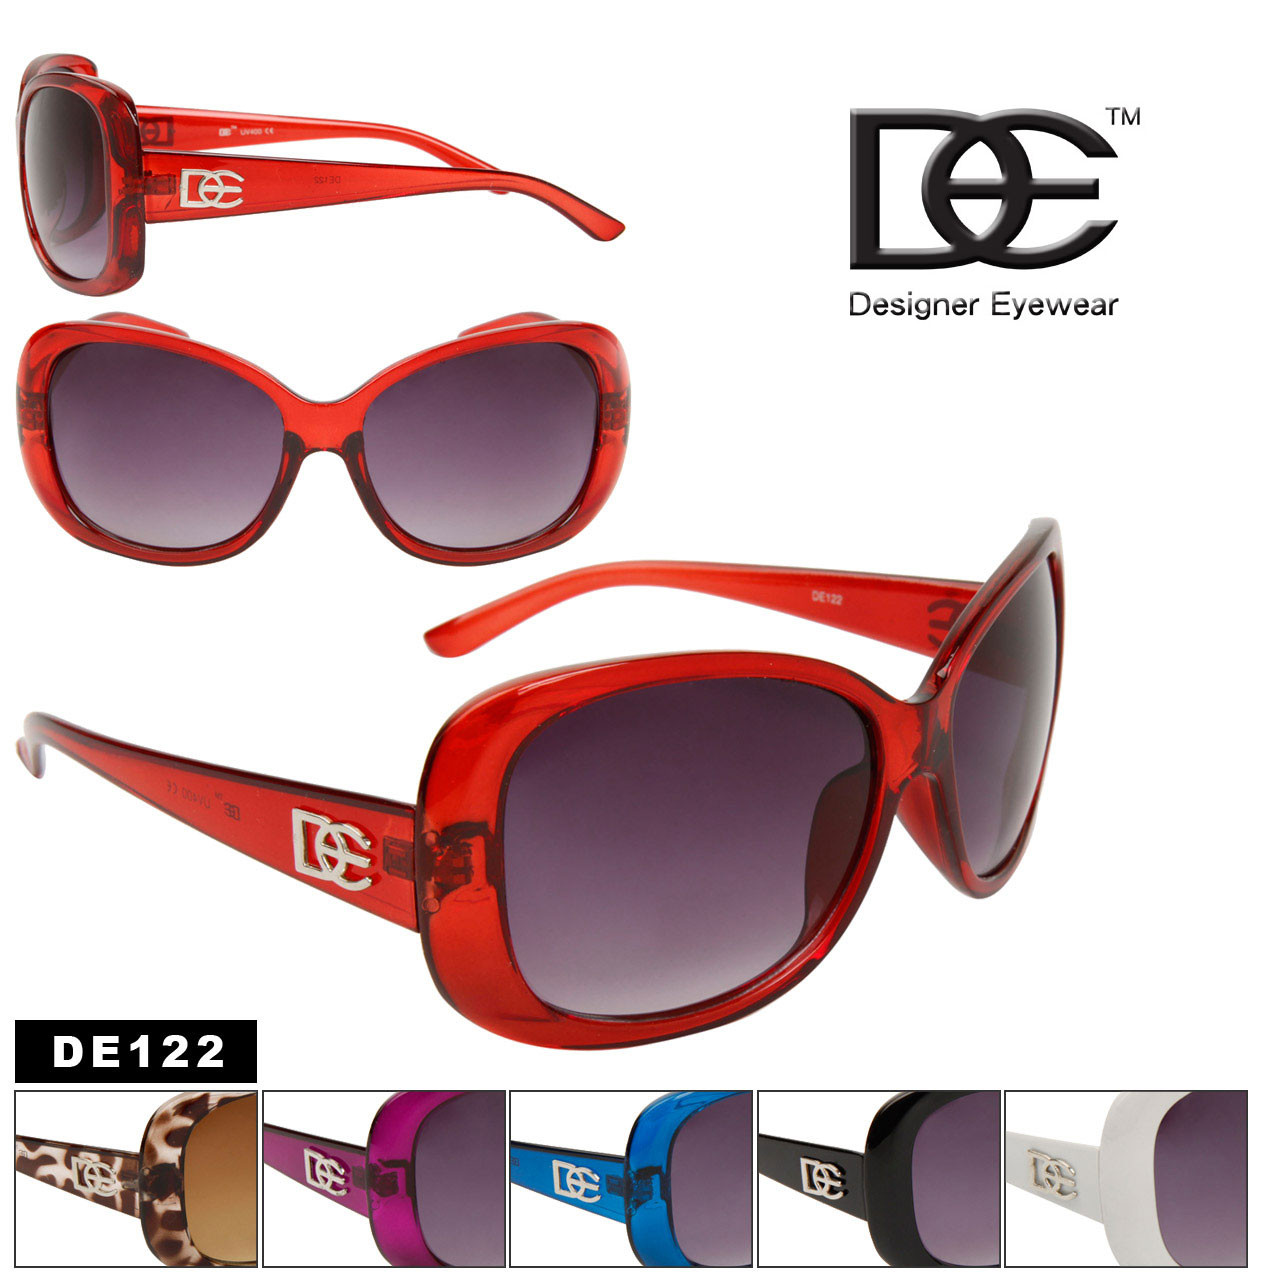 DE Designer Eyewear Wholesale Sunglasses for Ladies DE122